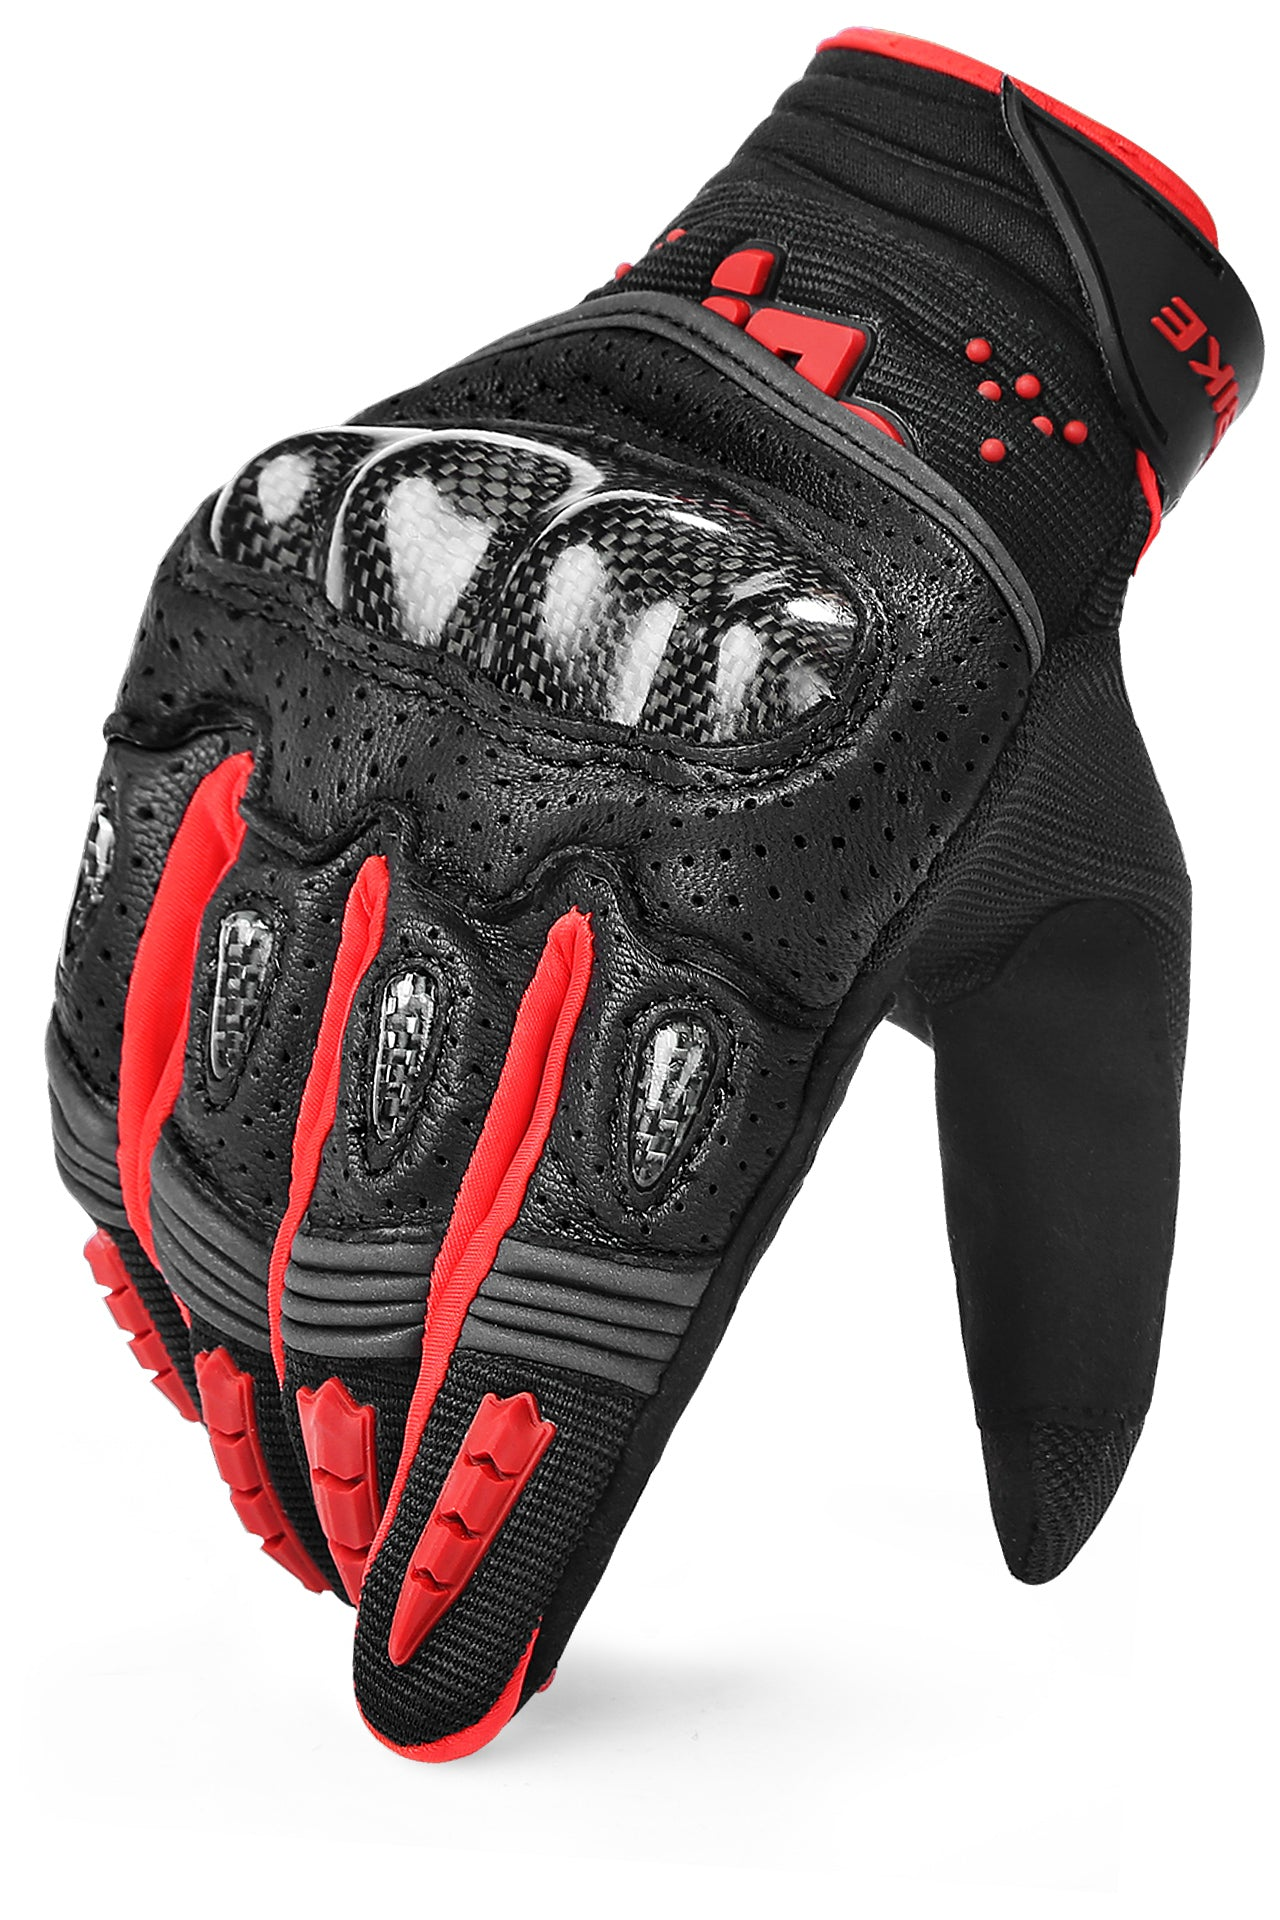 Urban & Cross Country Motorcycle Glove Red